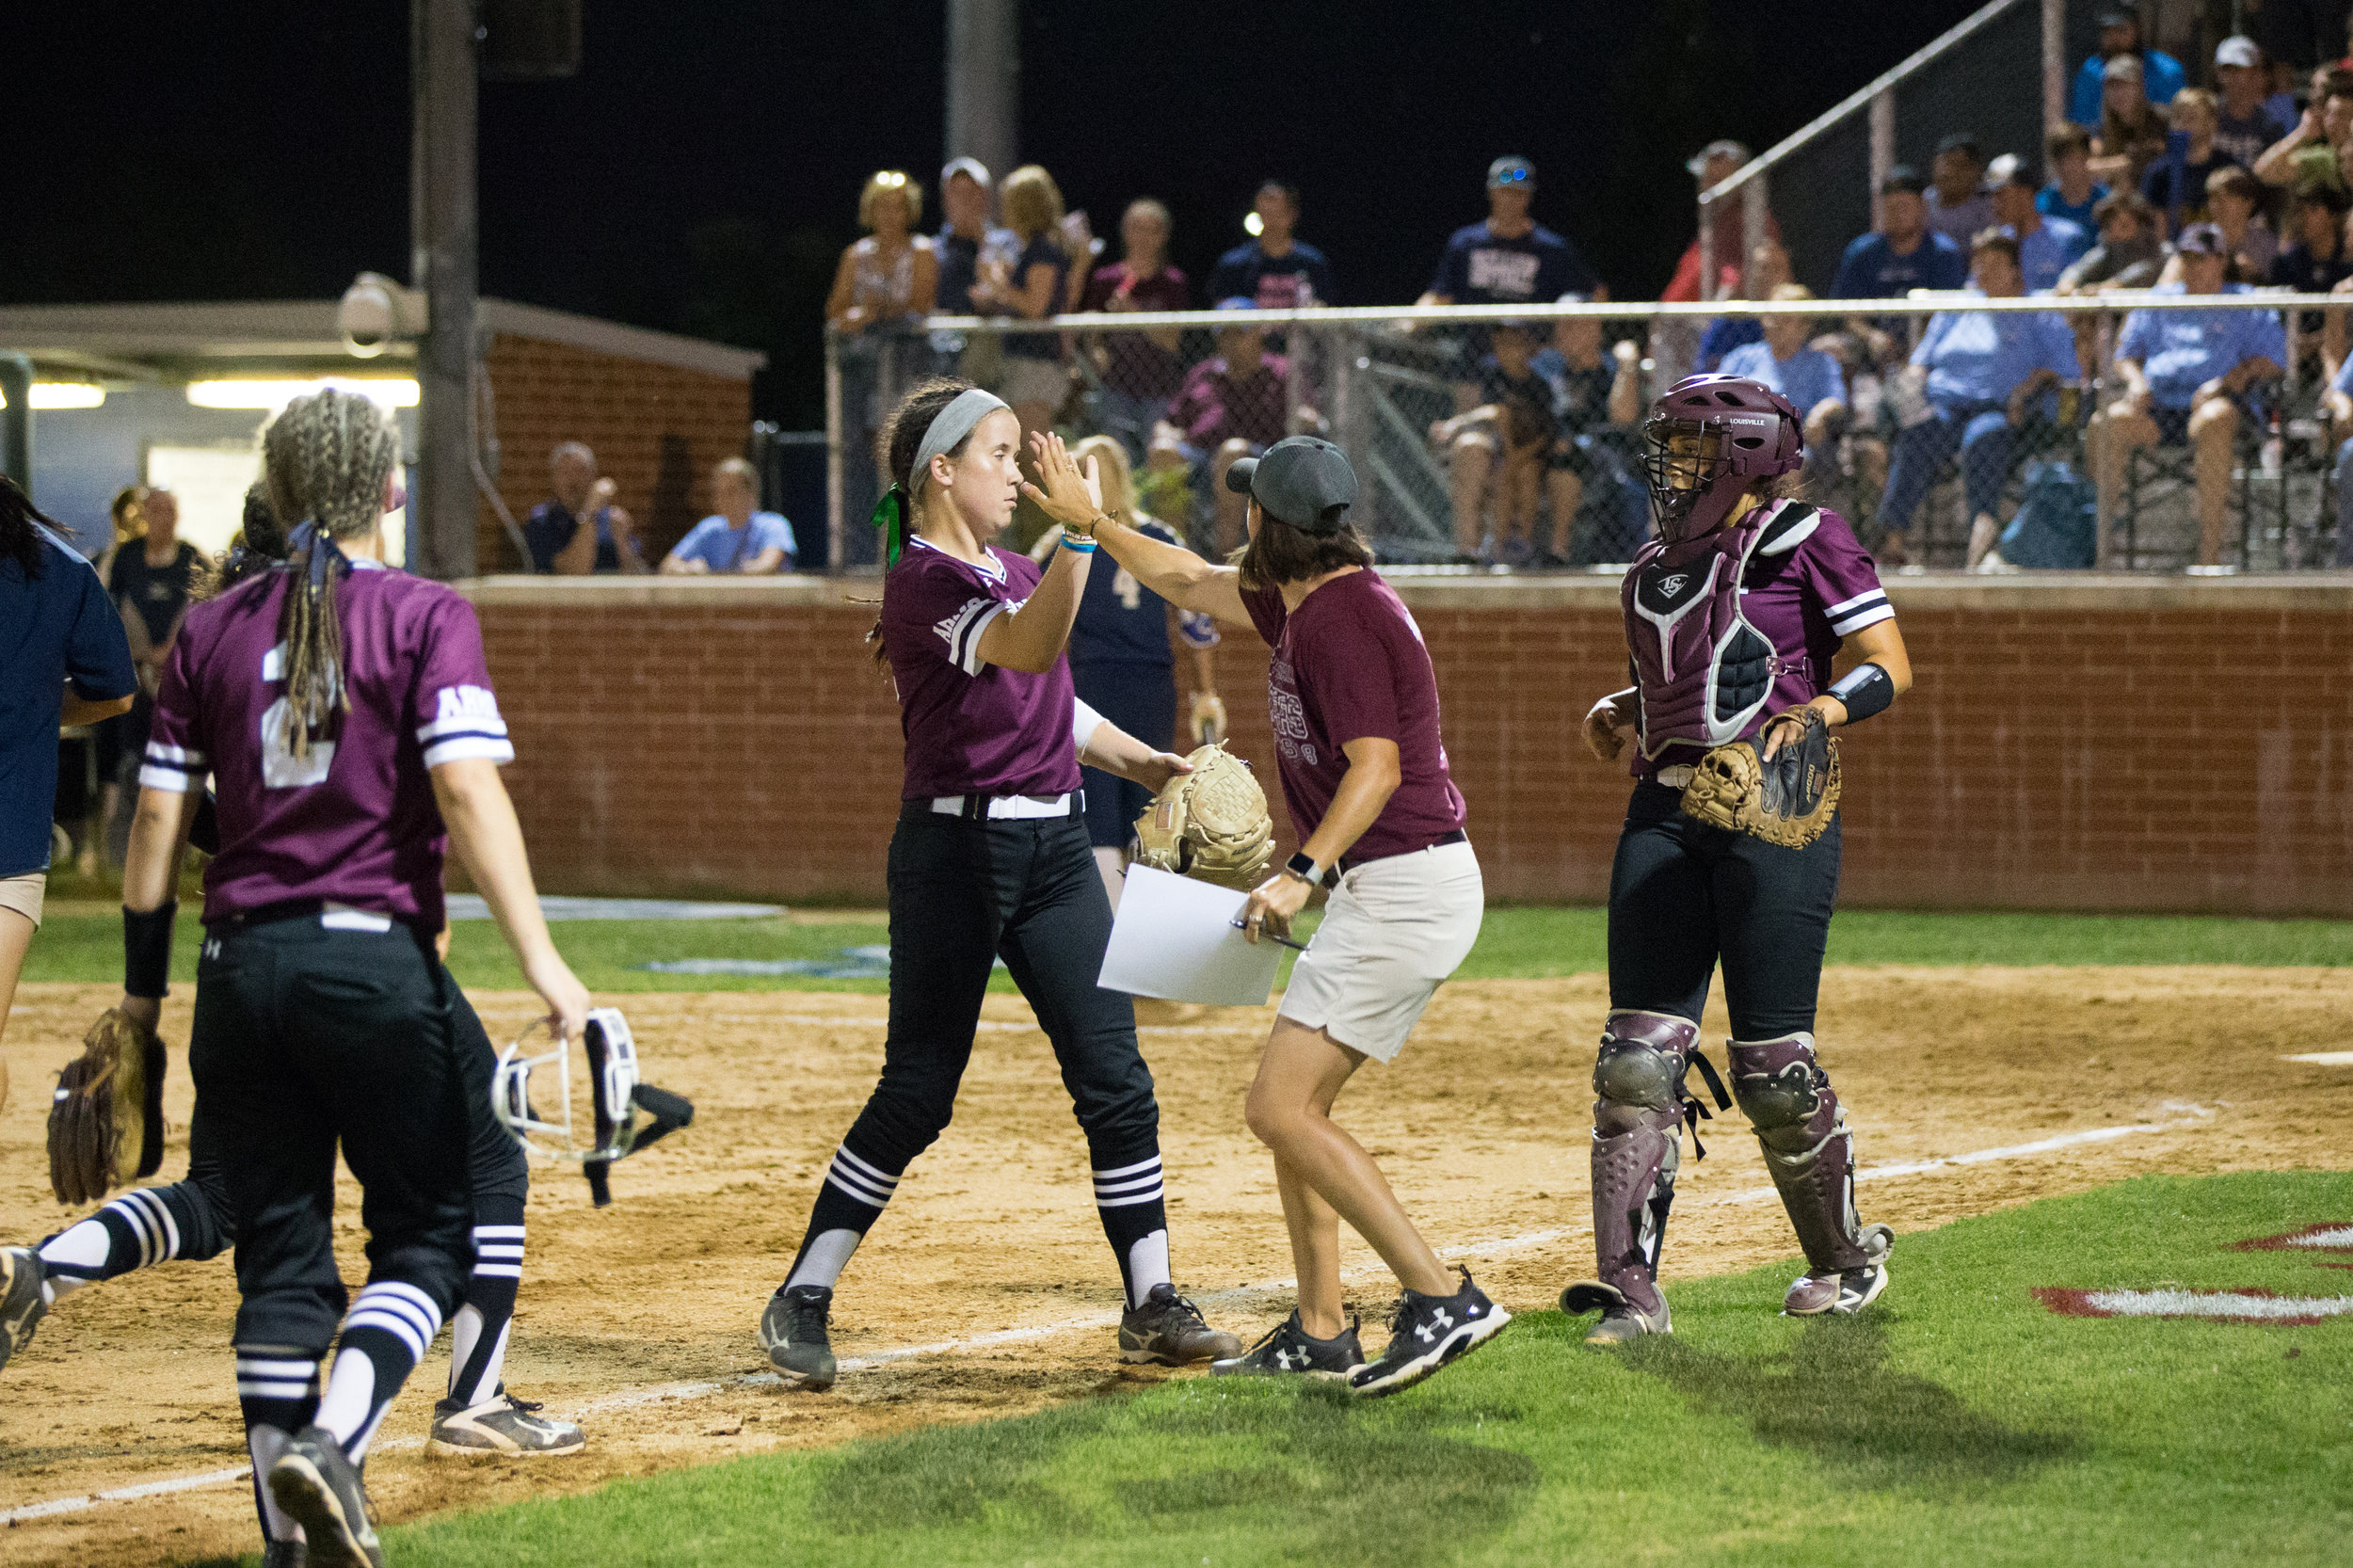 5_18 Wylie Softball-185.jpg